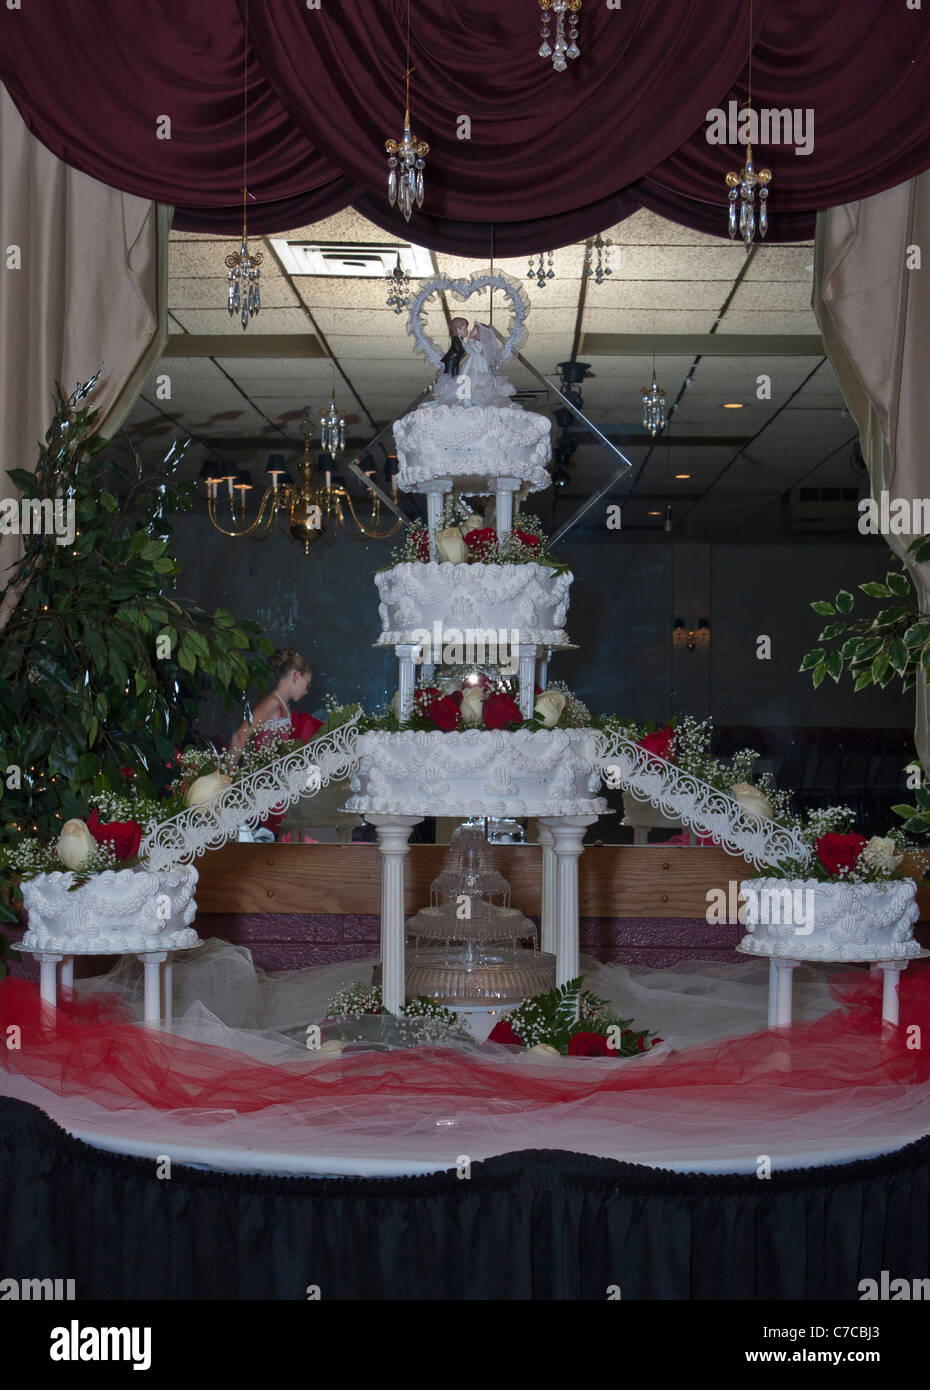 Large Multi Tiered Cake With Lit Fountain Under Neath And Bride And